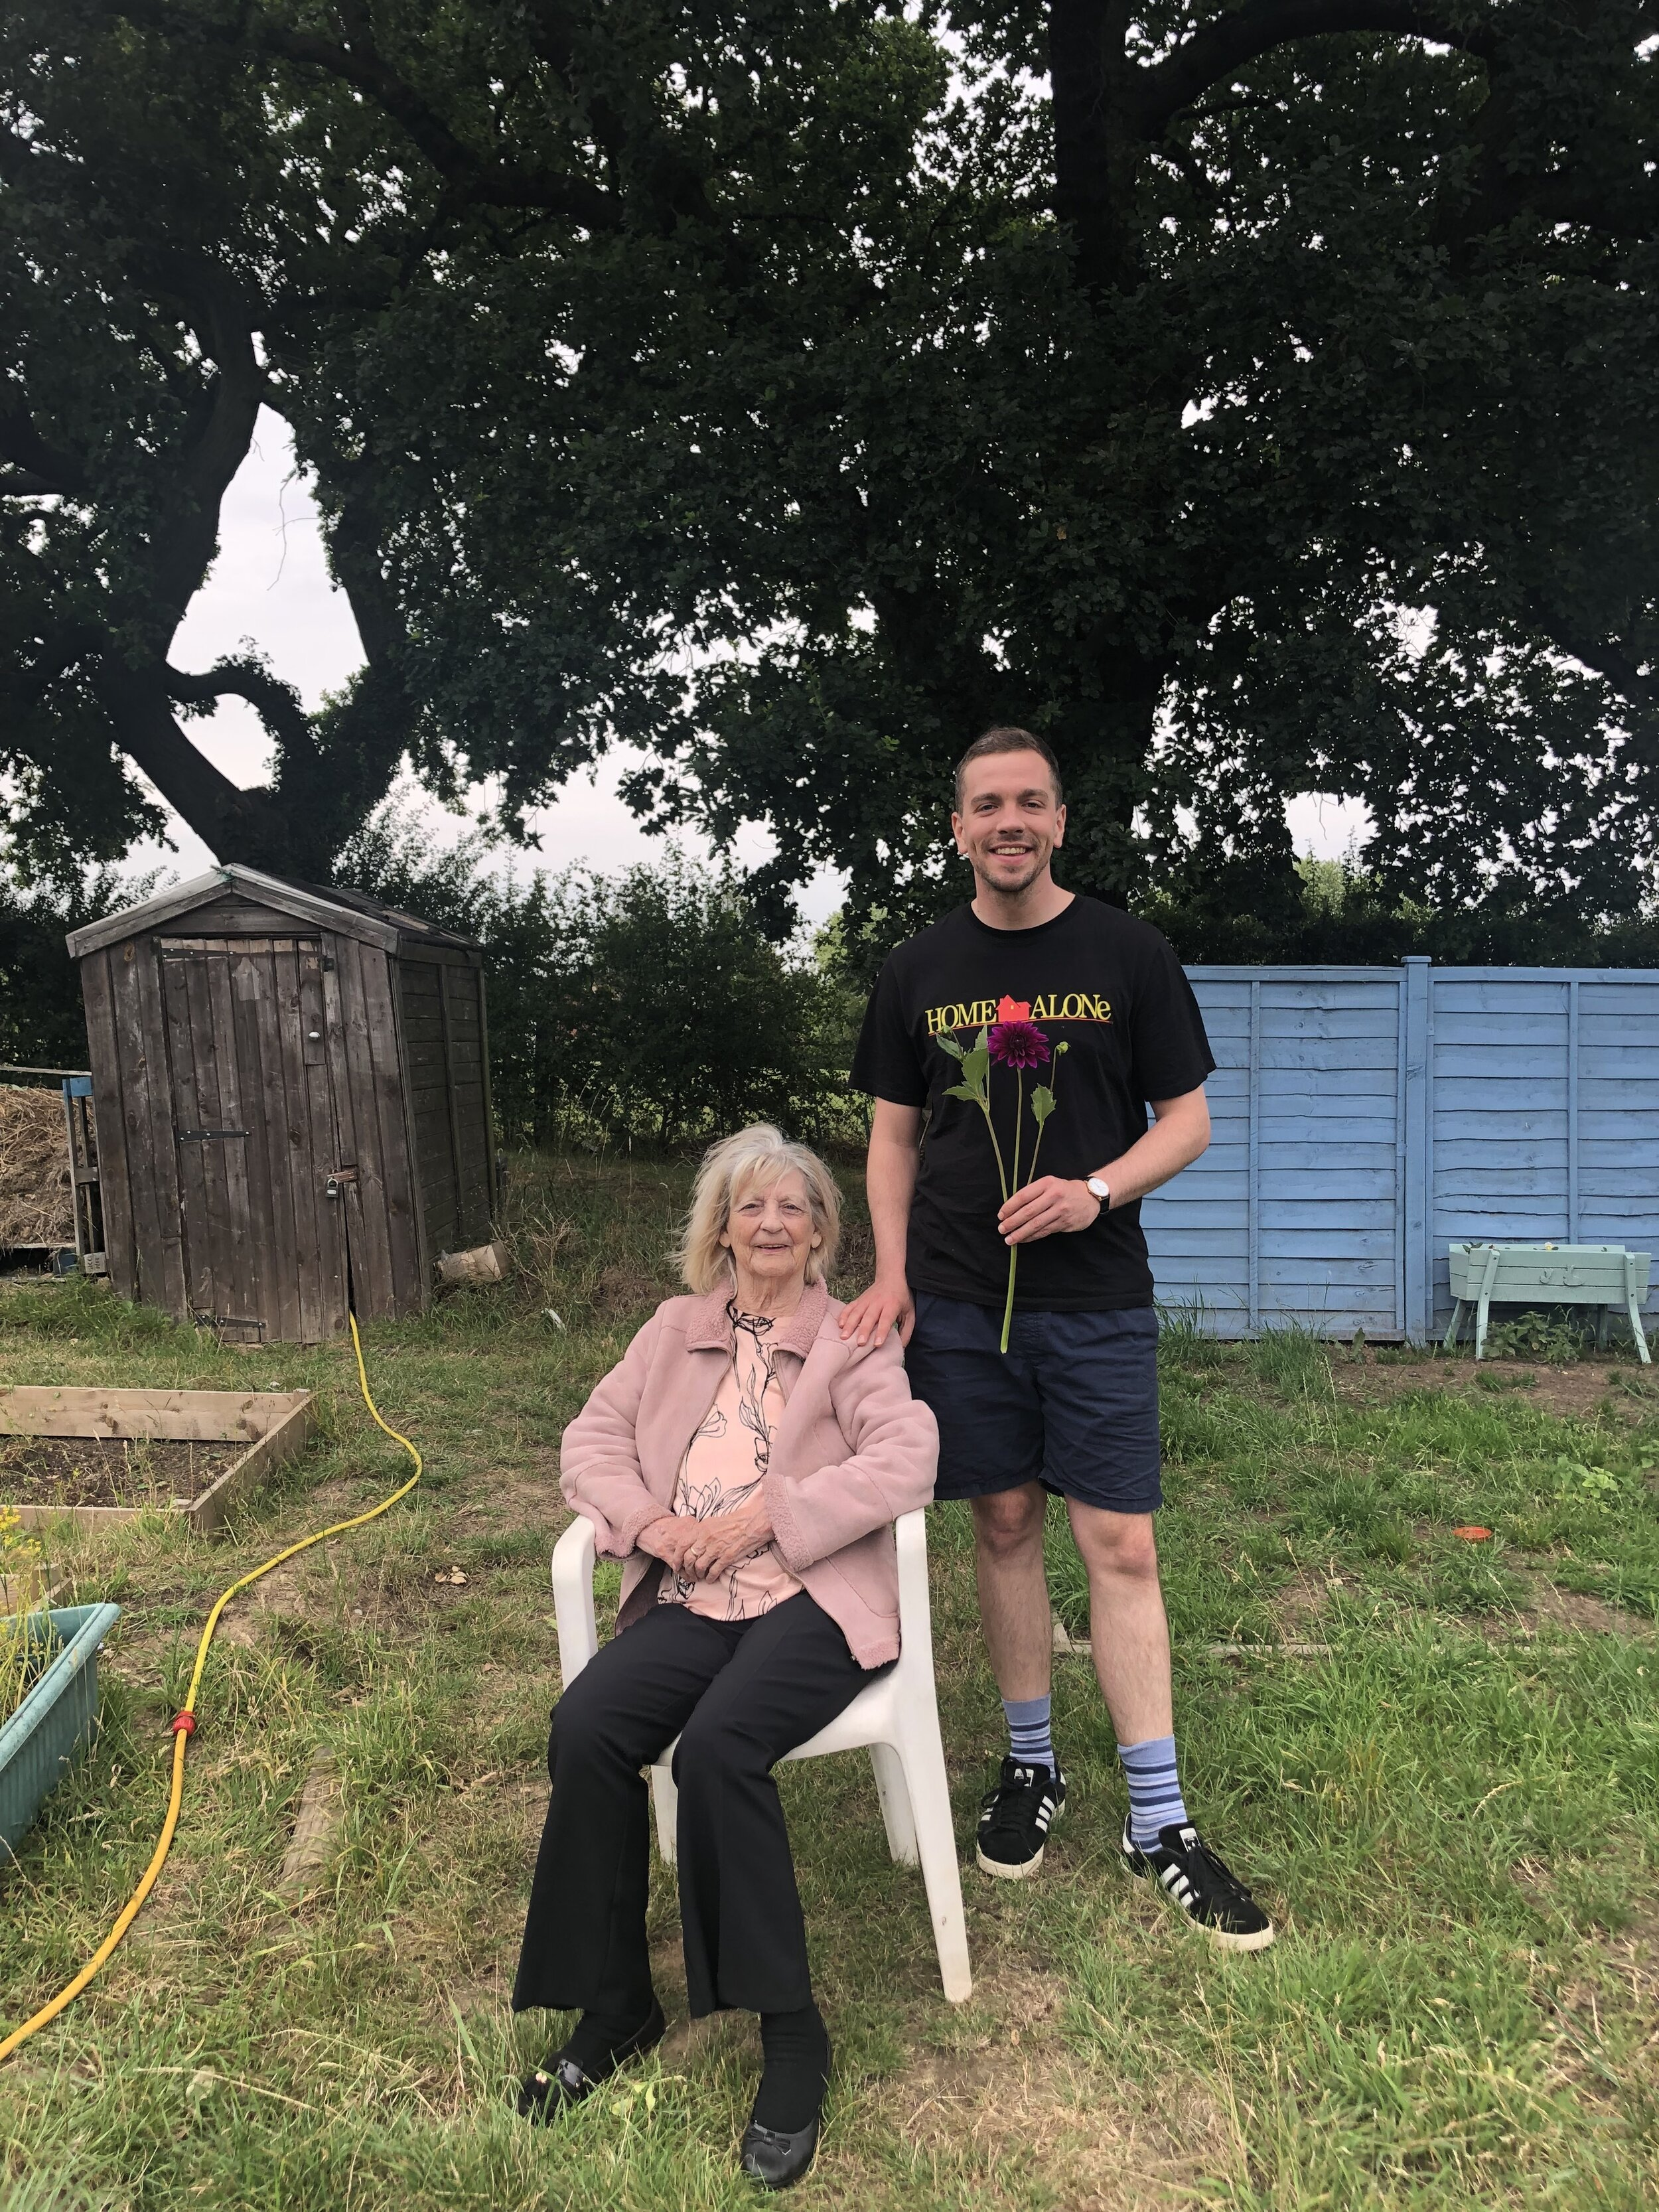 Nanny May and James - August 2019